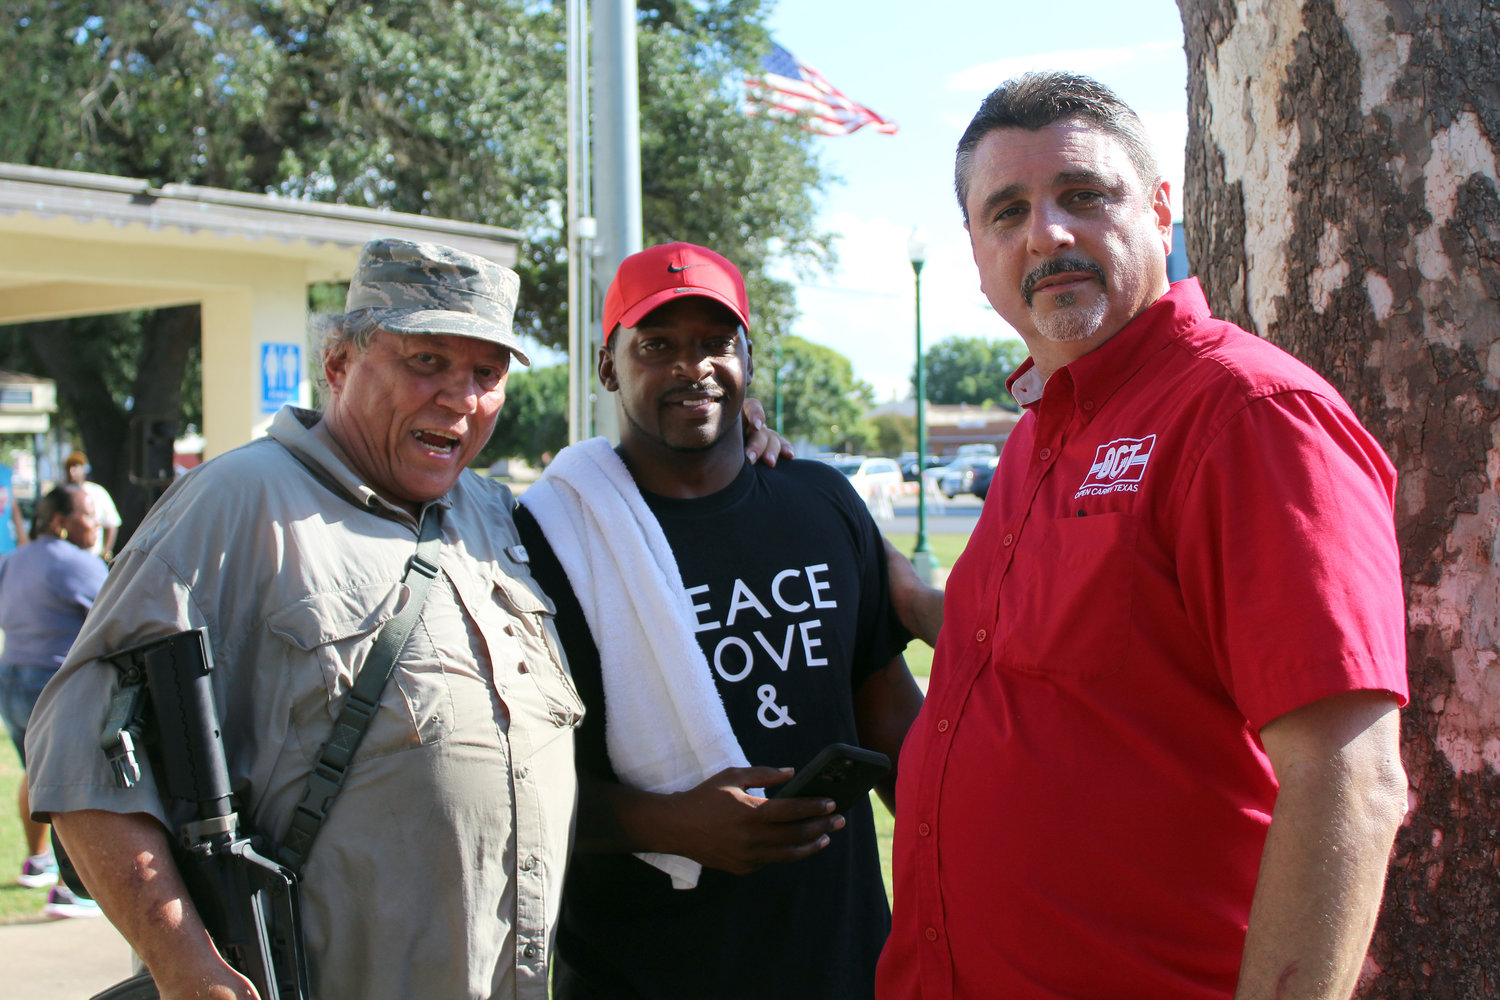 Mark Gurgevich, left, and David Amad, right, representing This is Texas Freedom Force and Open Cary Texas, meet with Gonzales Juneteenth co-coordinator Joe White prior to the start of the Juneteenth celebration in Confederate Square.